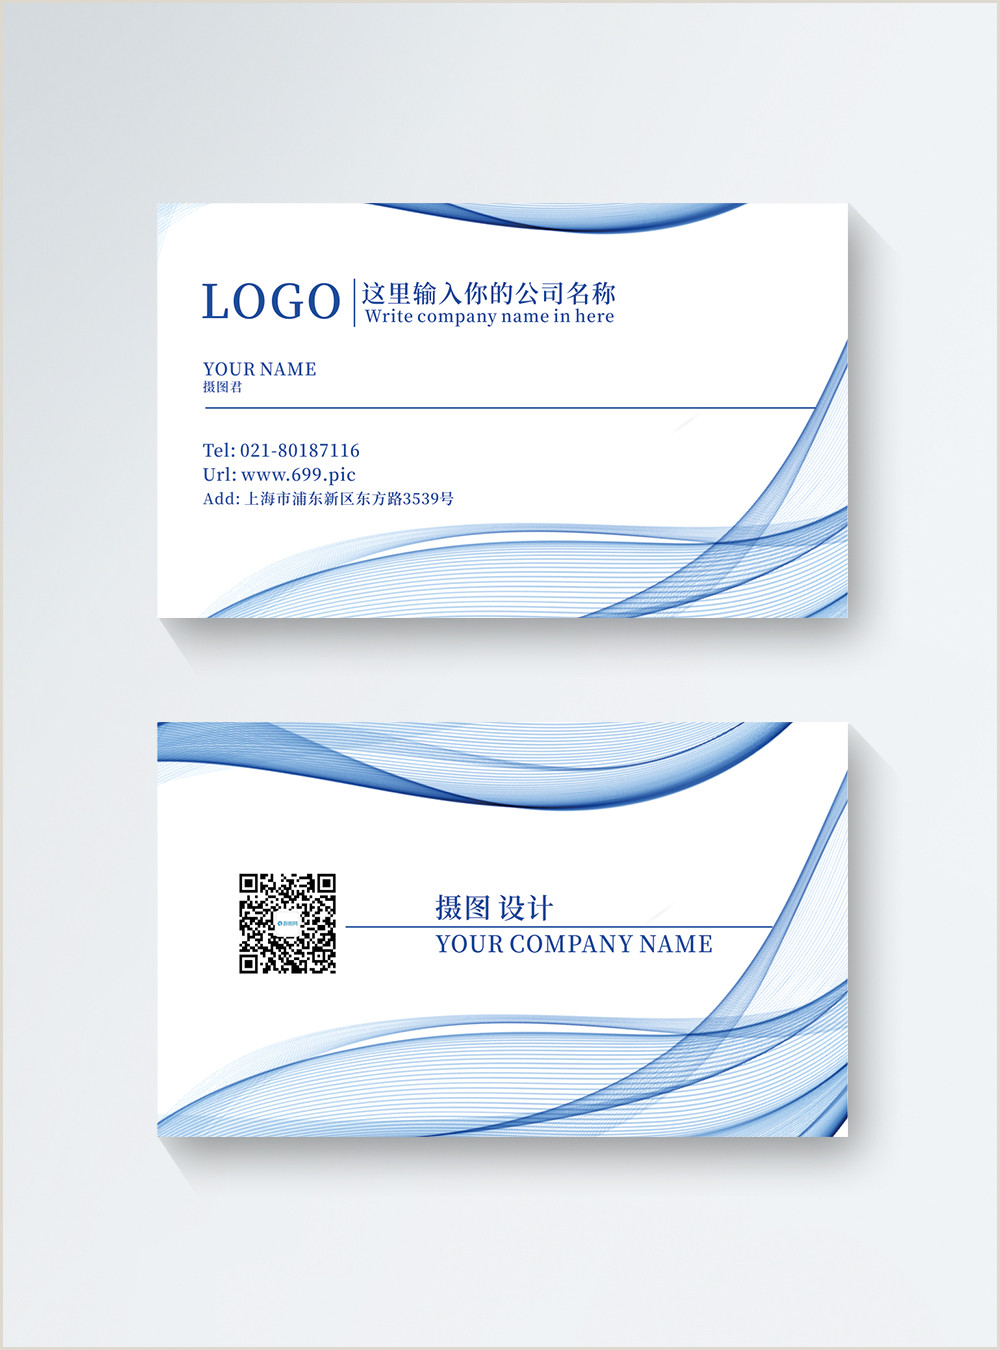 Personal Business Card Samples Simple Business Personal Business Card Template